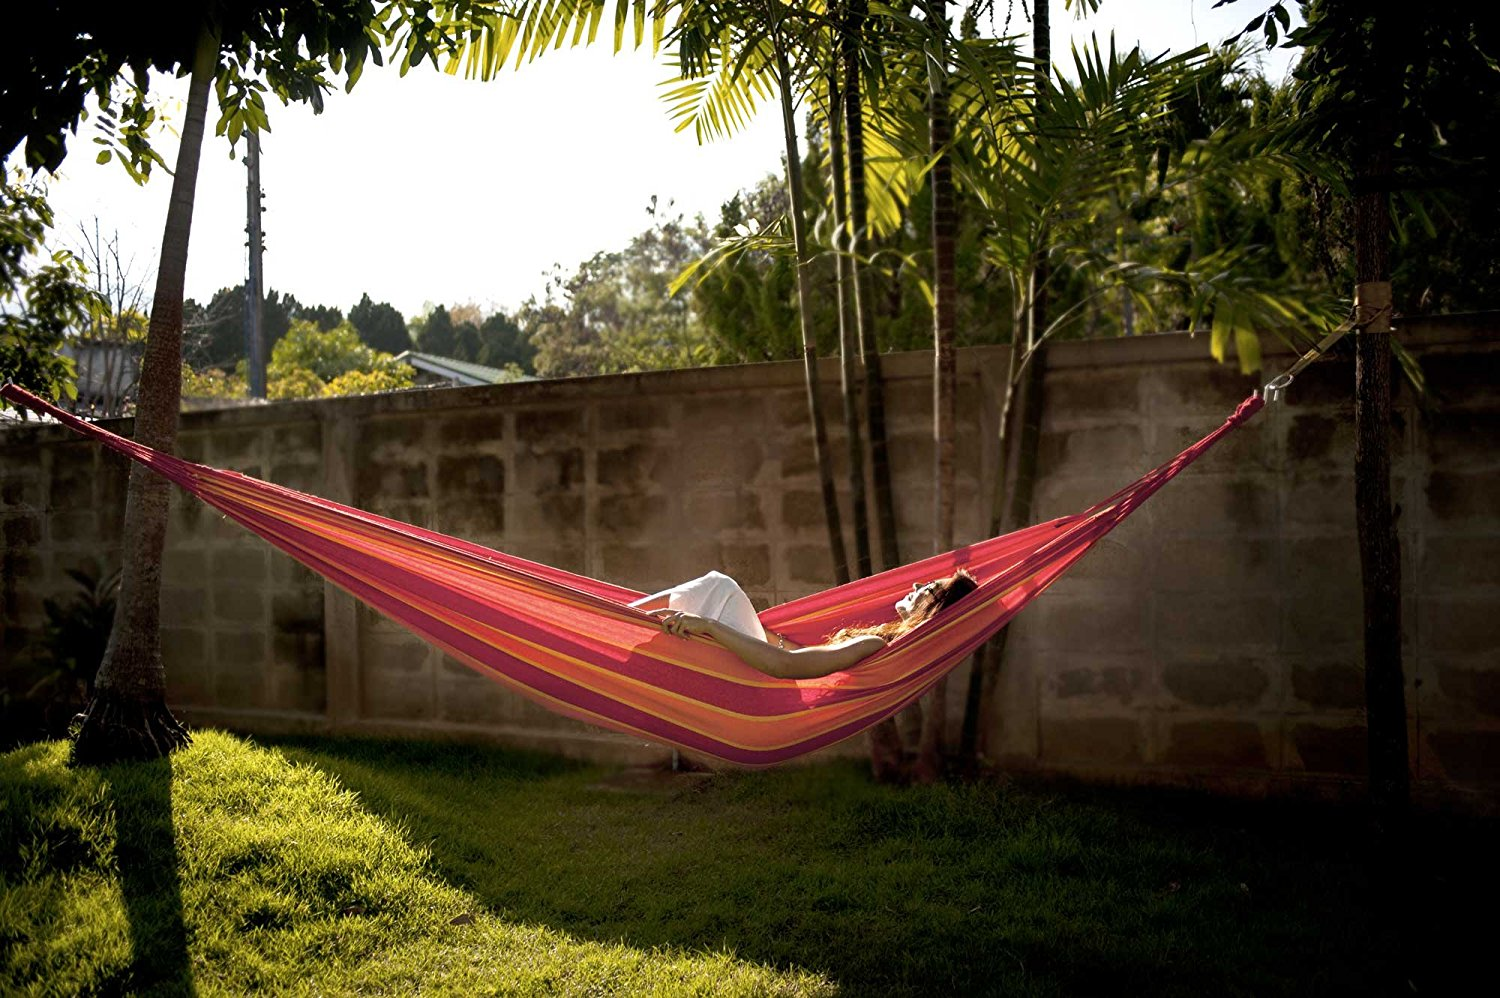 A Brazilian Double Hammock made by Hammock Sky that you can use as a cheap replacement for your mattress